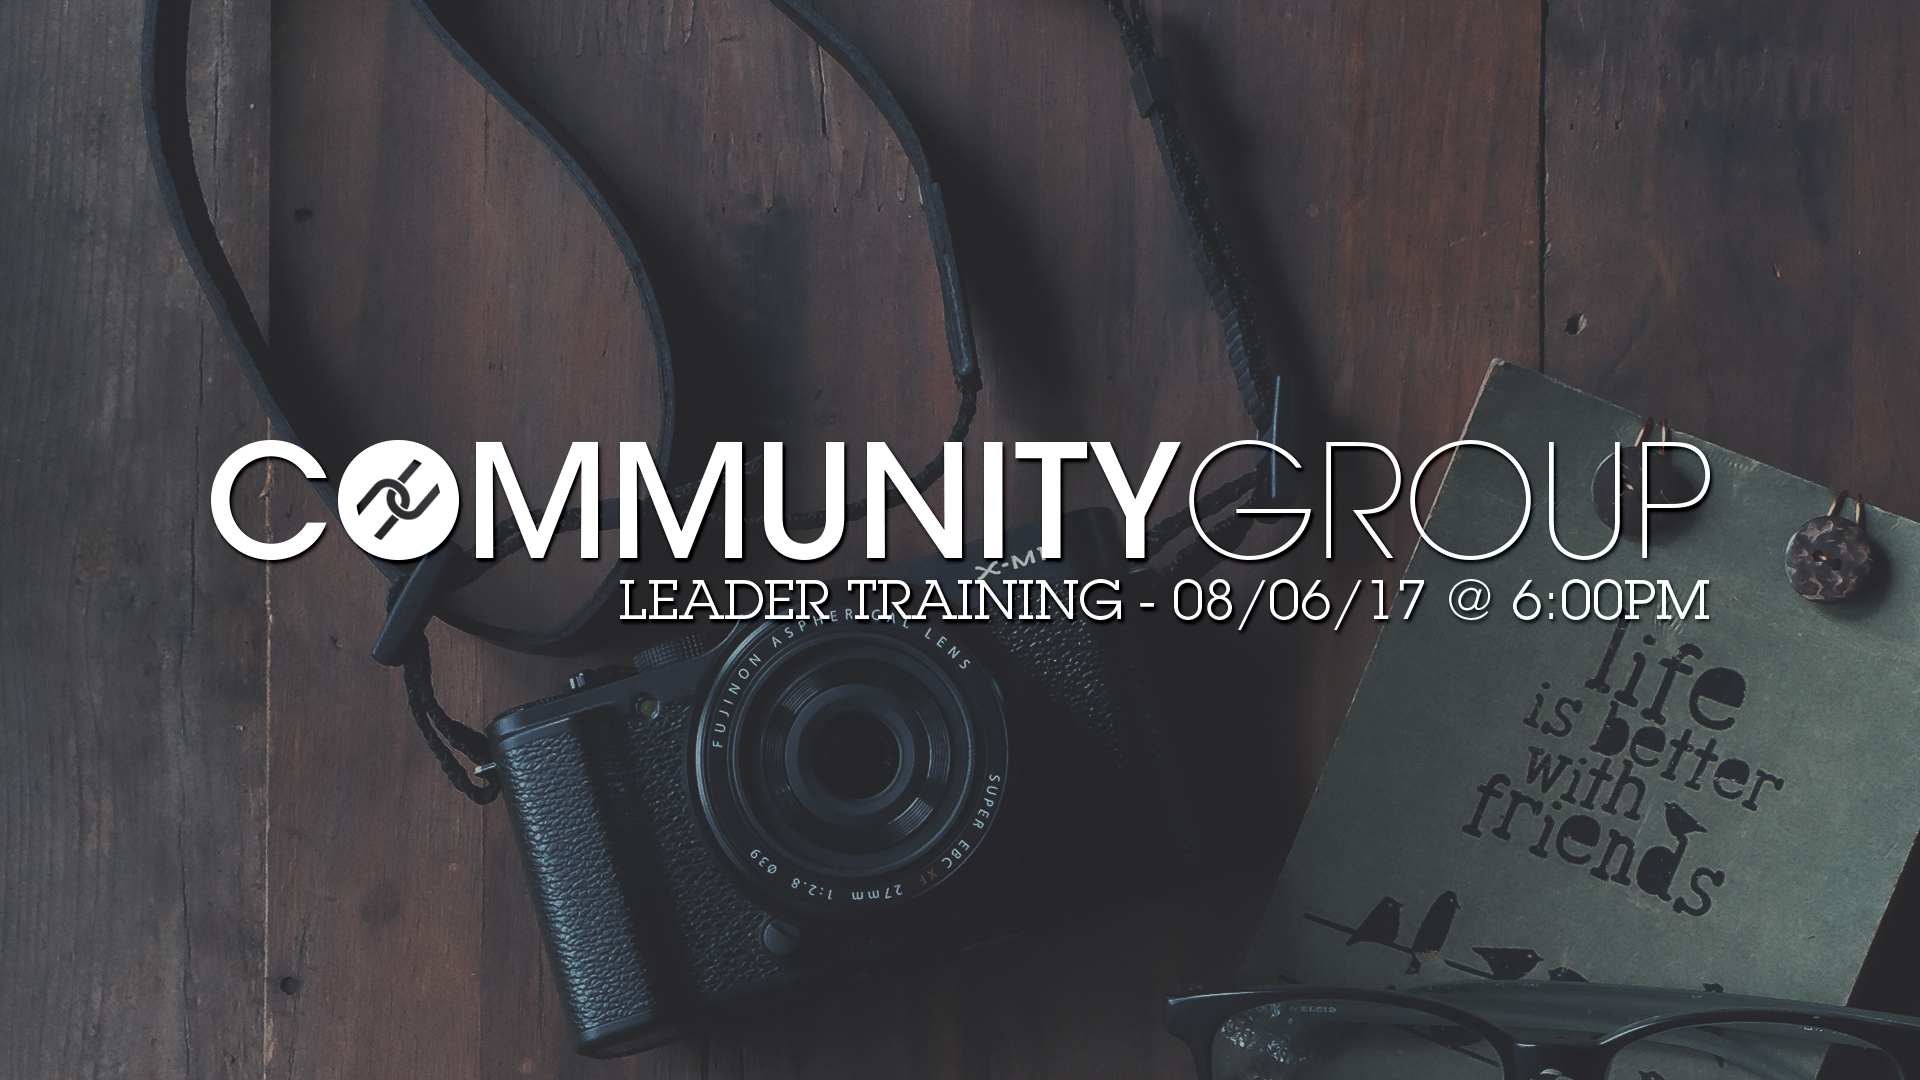 Community Group Leader Training